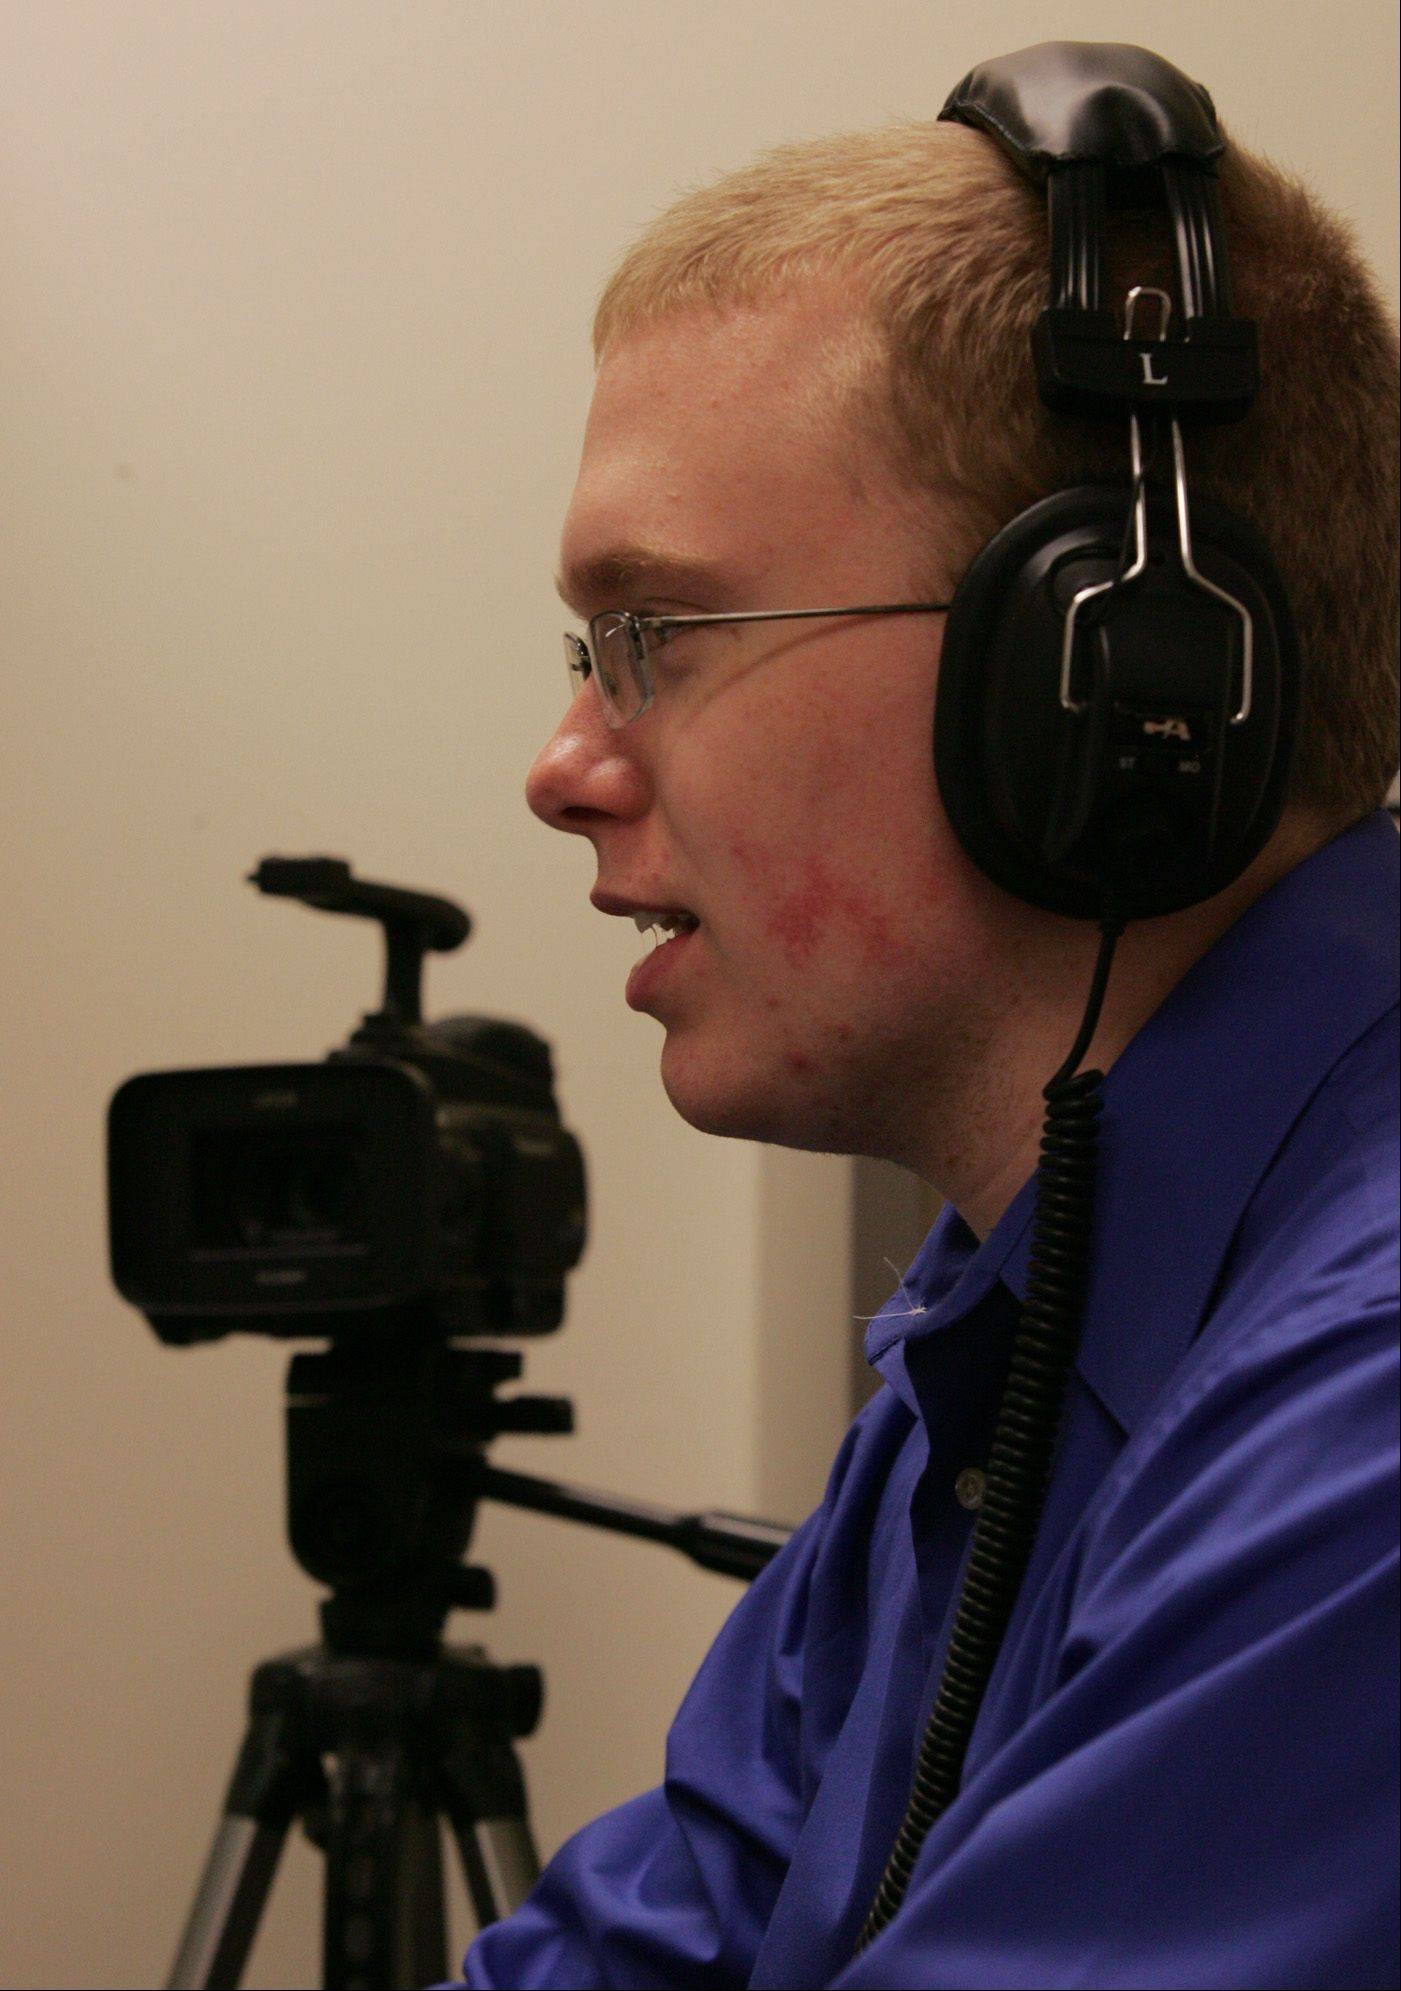 Hampshire High School senior Danny Heck has done videos for his school and his church. His plan is to attend Elgin Community College for two years and go on to complete a bachelor of arts degree in filmmaking from Columbia College in Chicago.